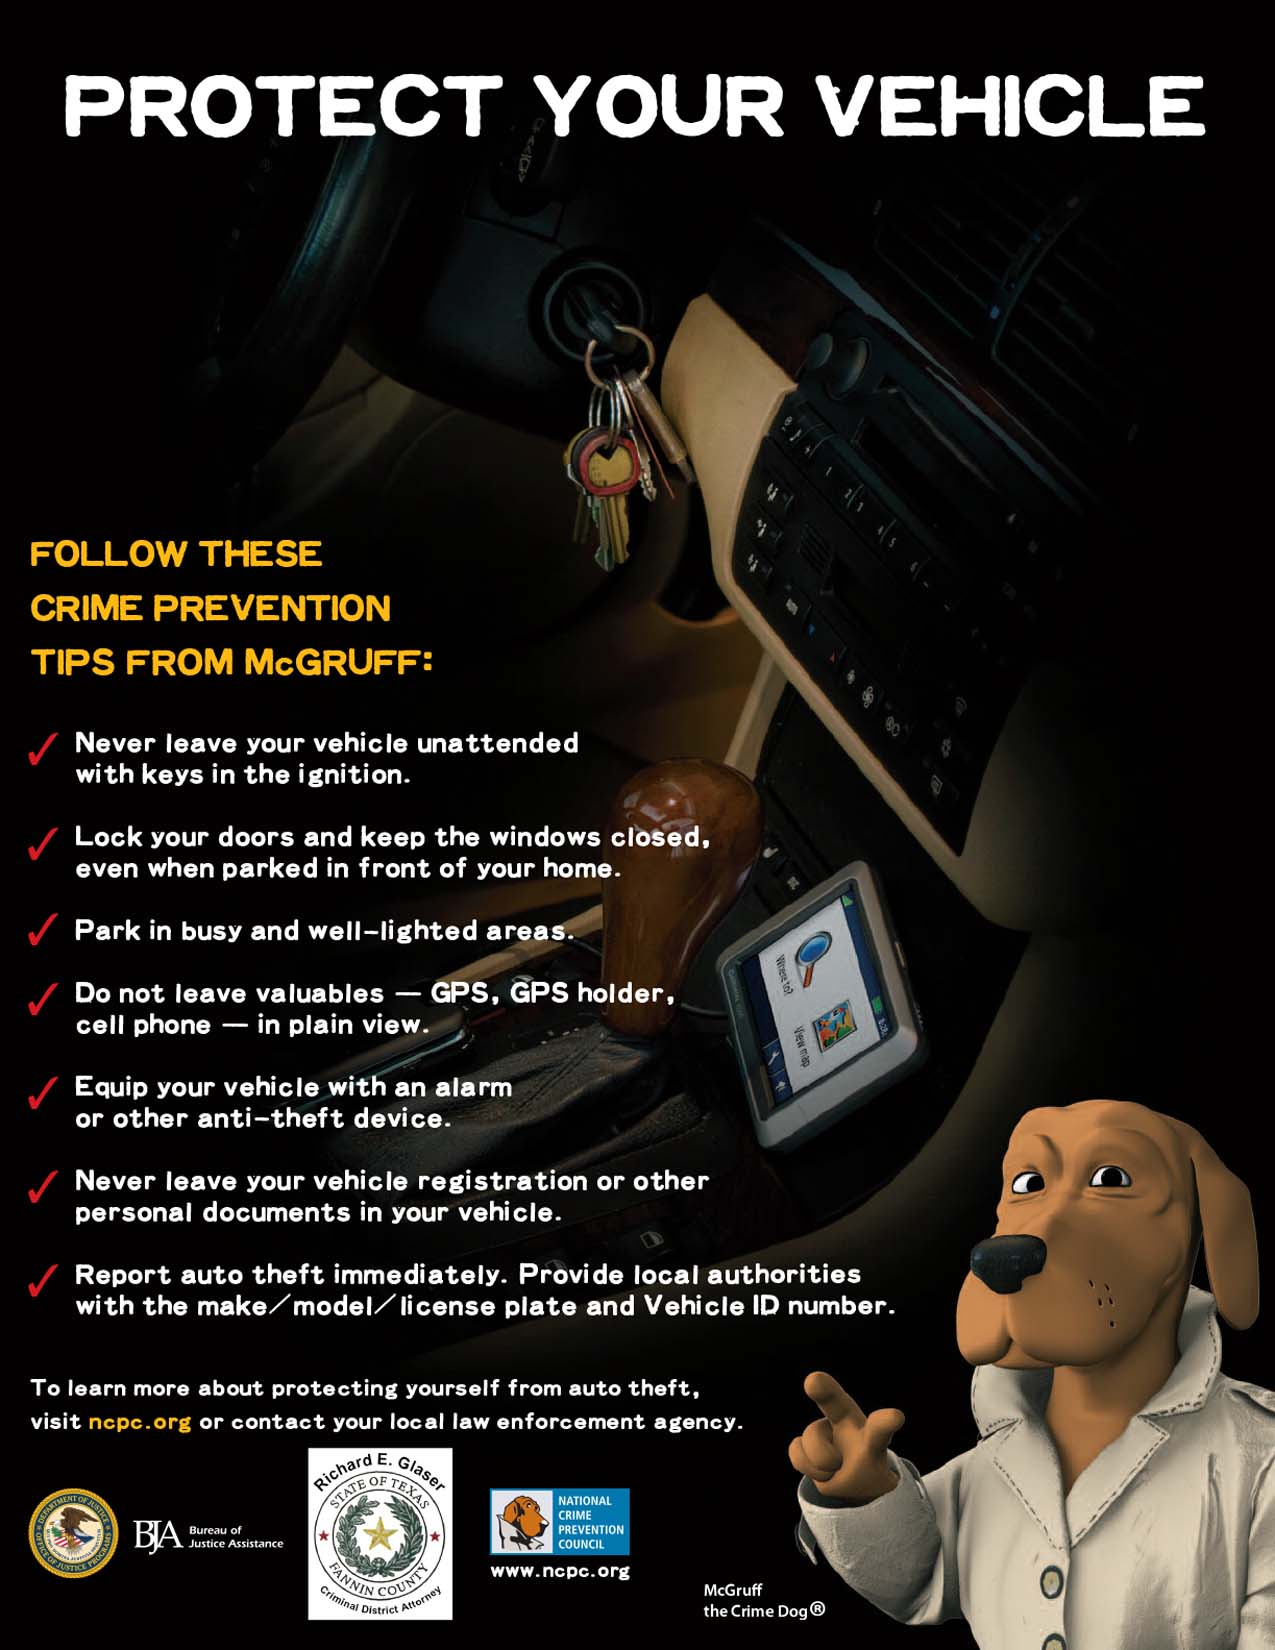 Recent Vehicle Thefts in Bonham and Surrounding Areas: Protect your Vehicle / PROTEJA SU VEHÍCULO